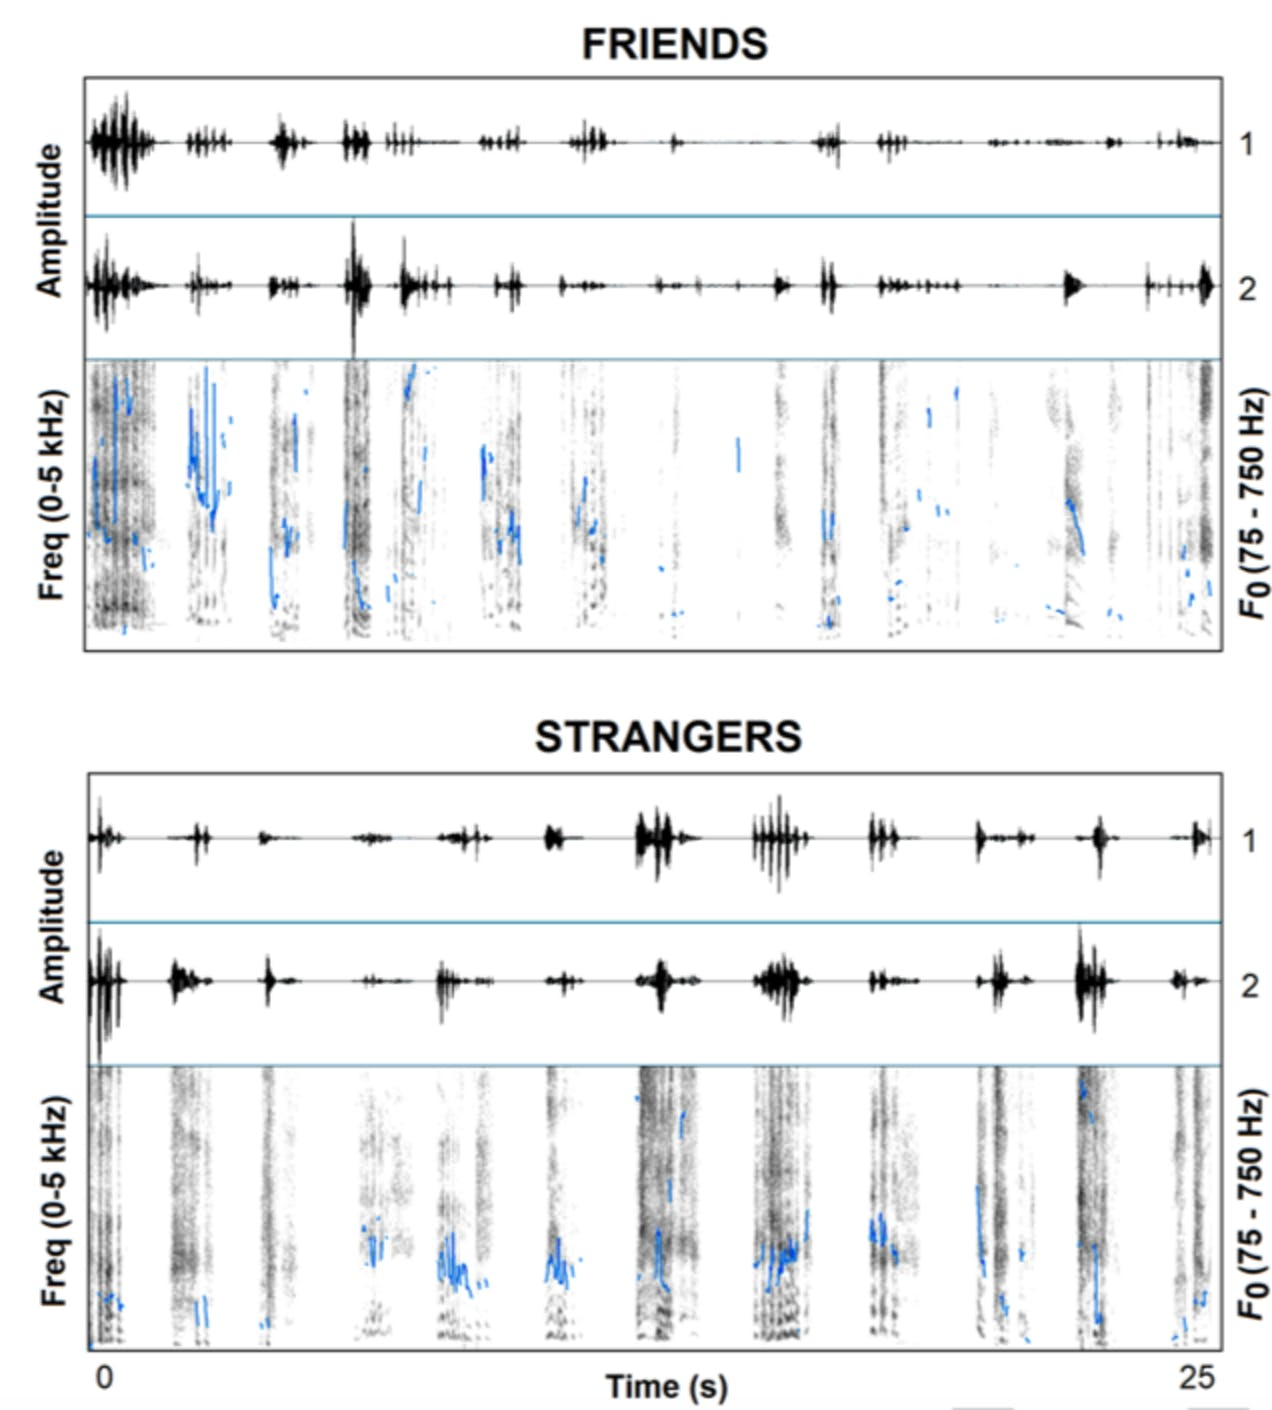 Researchers showed that the sounds of friends or strangers laughing together are noticeably different.